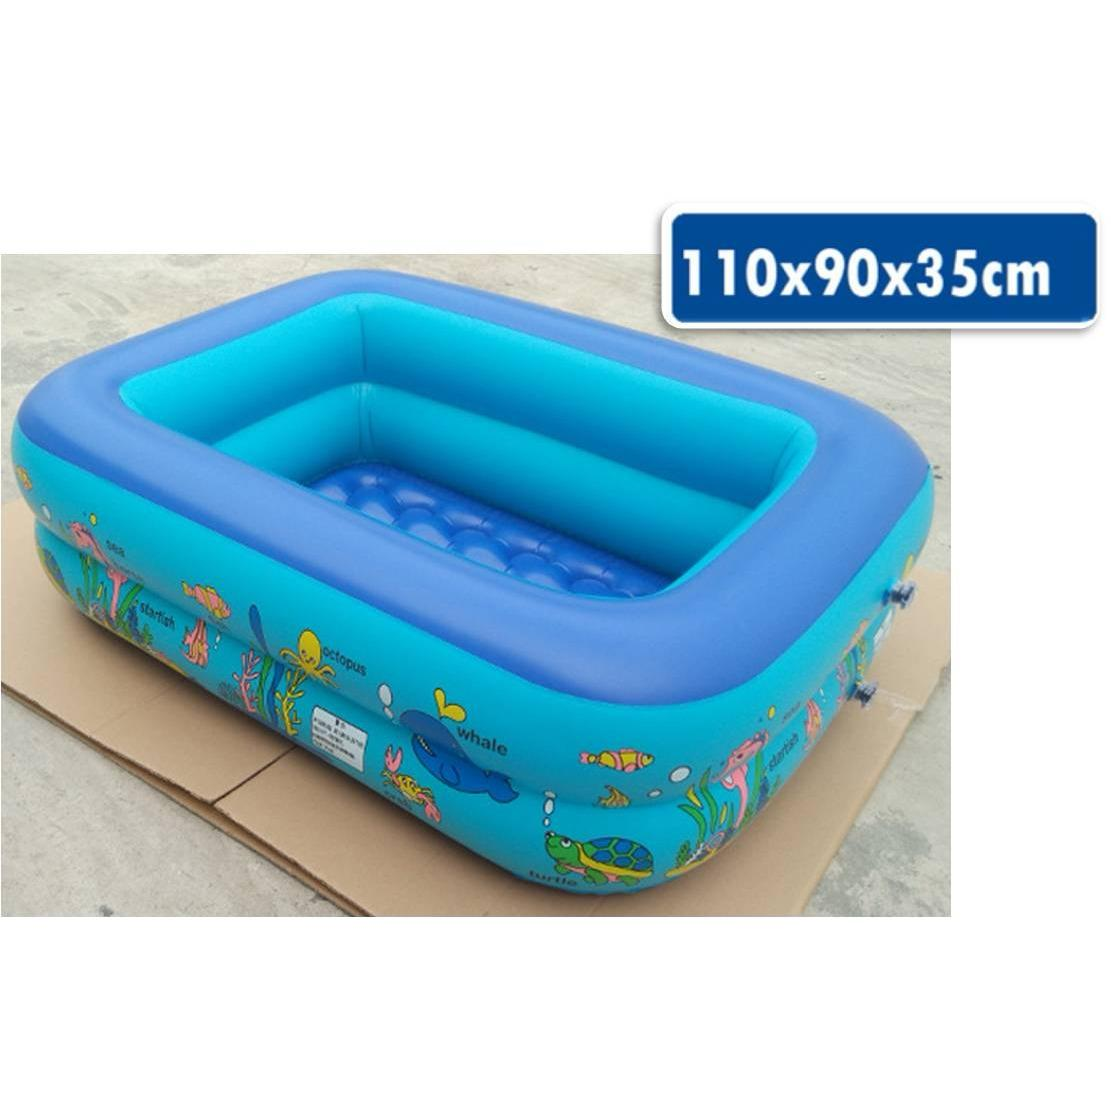 Inflatable Swimming Baby Toddler Kids Child Boy G*rl Pool Swim Float Bathtub Tub Intex Shower Wading 110 90 35Cm Compare Prices